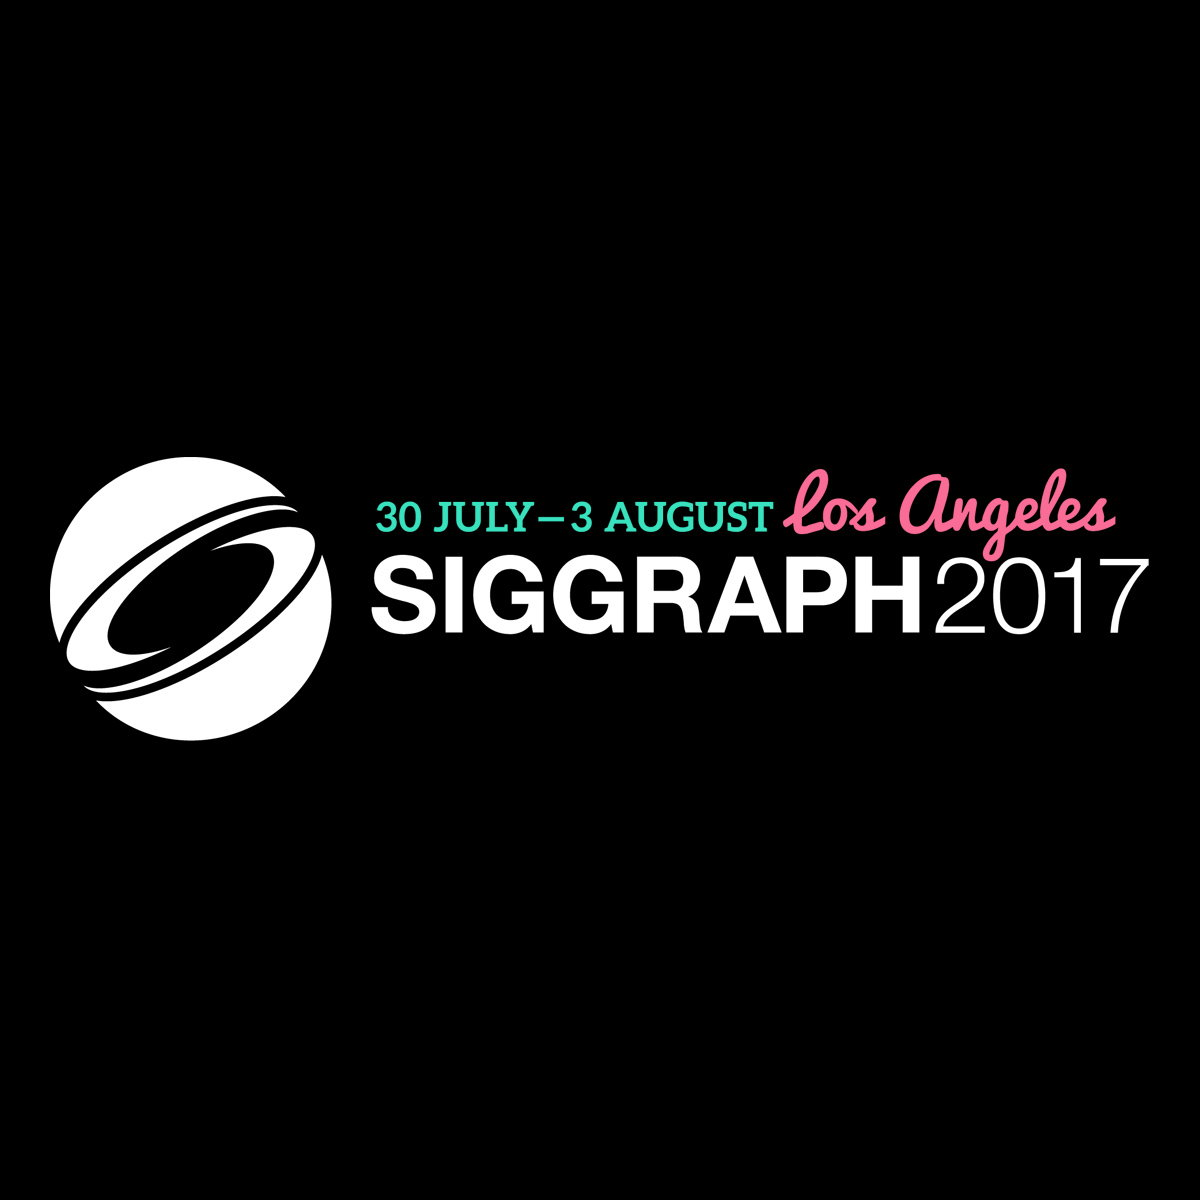 2017 Siggraph Conference - Call for Submissions